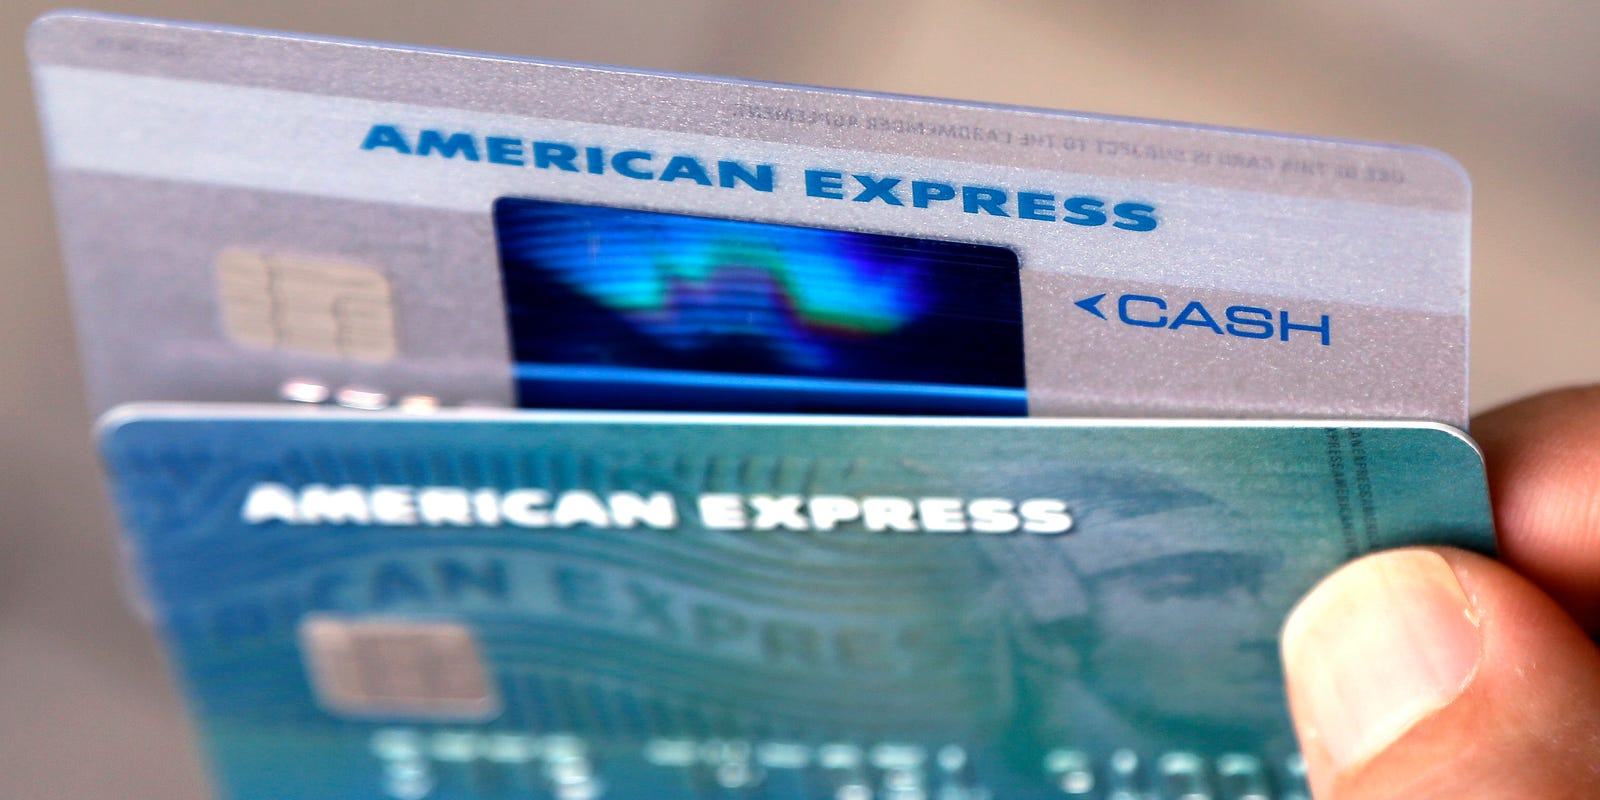 Facing new competition, AmEx polishes up Platinum Card